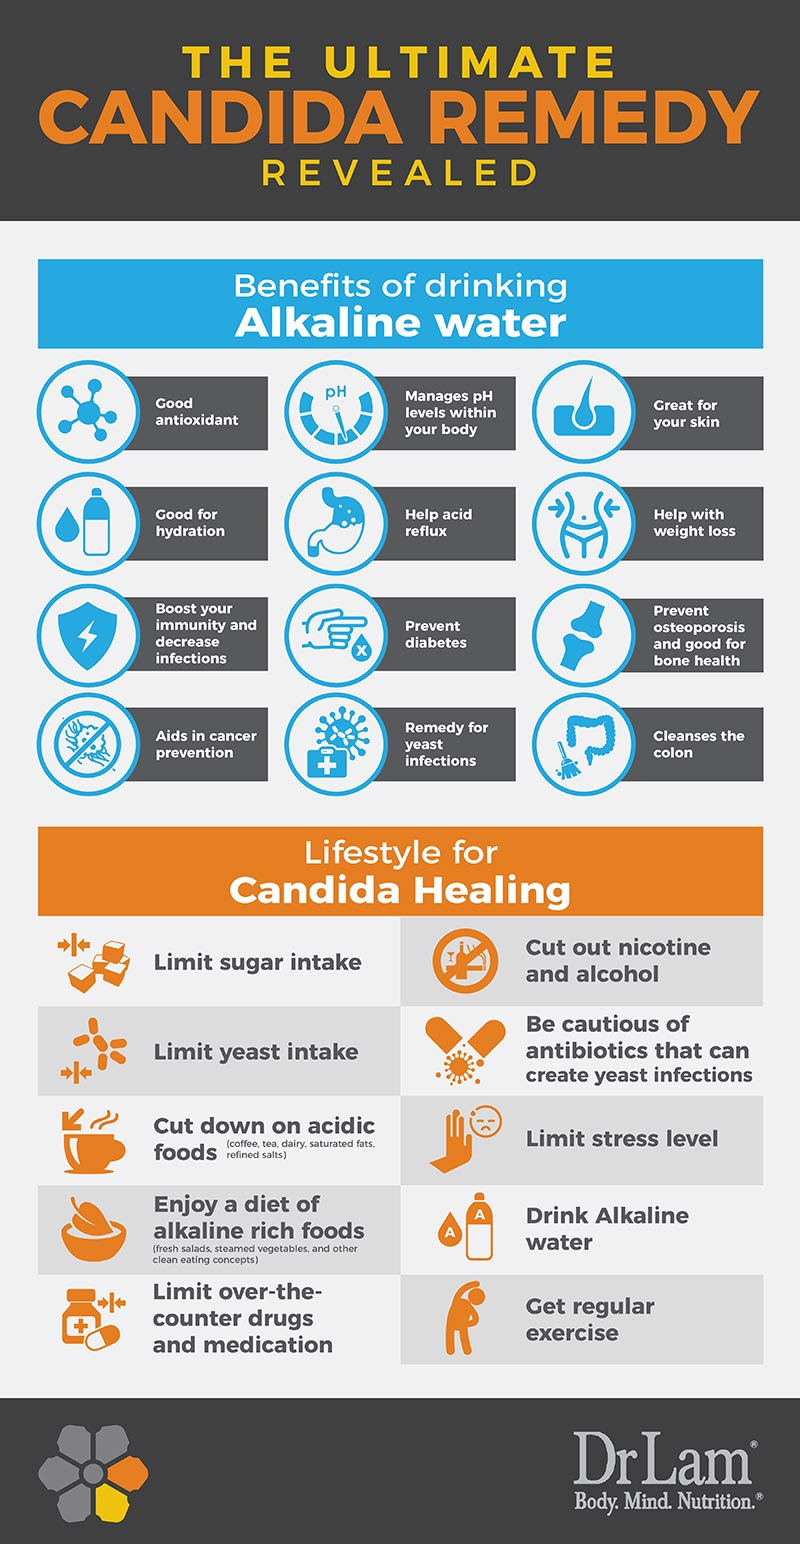 Check out this easy to understand infographic about the ultimate Candida remedy